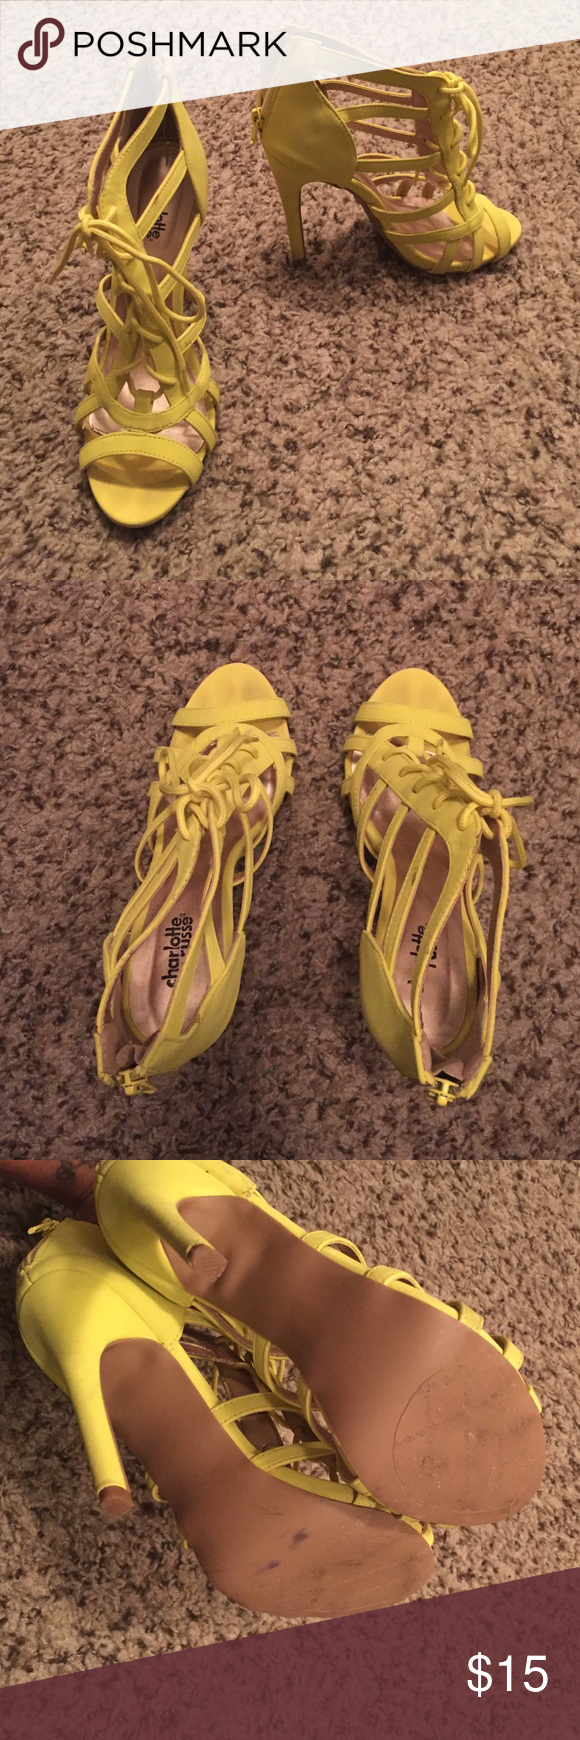 Charlotte Russe - Heels, Open Toe Love these! Only worn once, perfect condition! Great lace-up front detail. Neon yellow color, pairs perfectly for color blocking. Charlotte Russe Shoes Heels